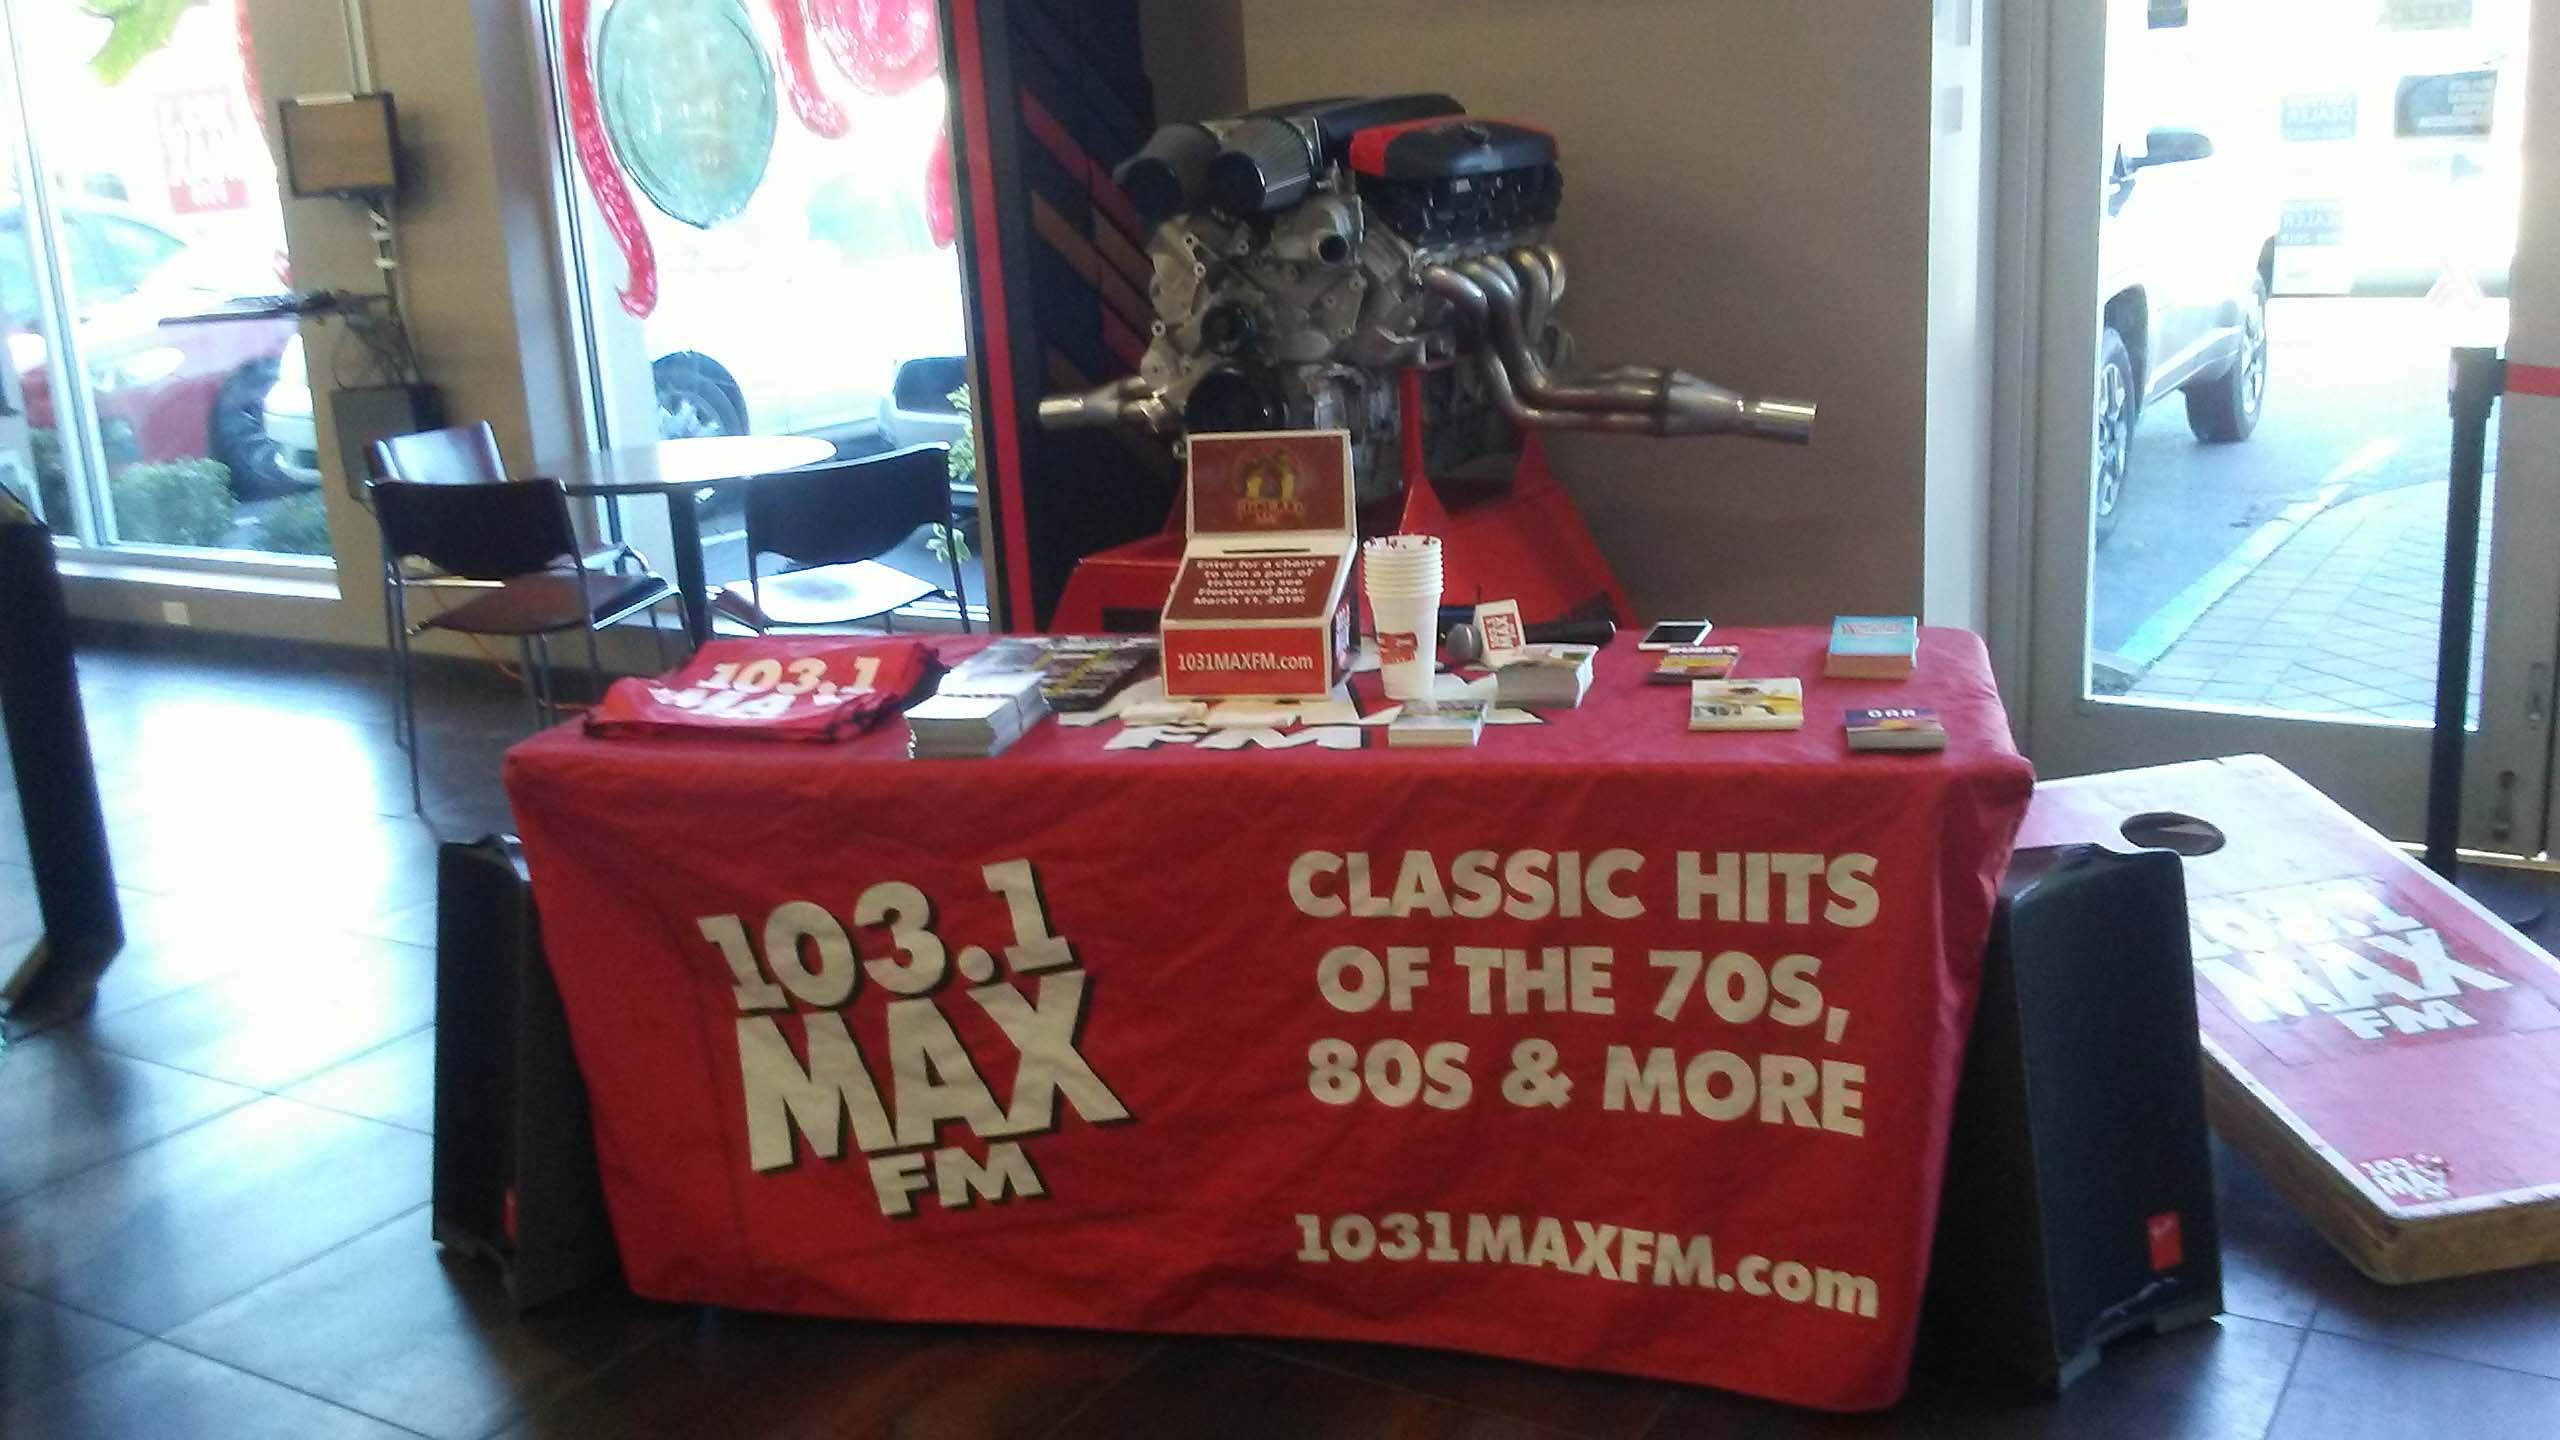 103.1 MAX FM at Security CDJR